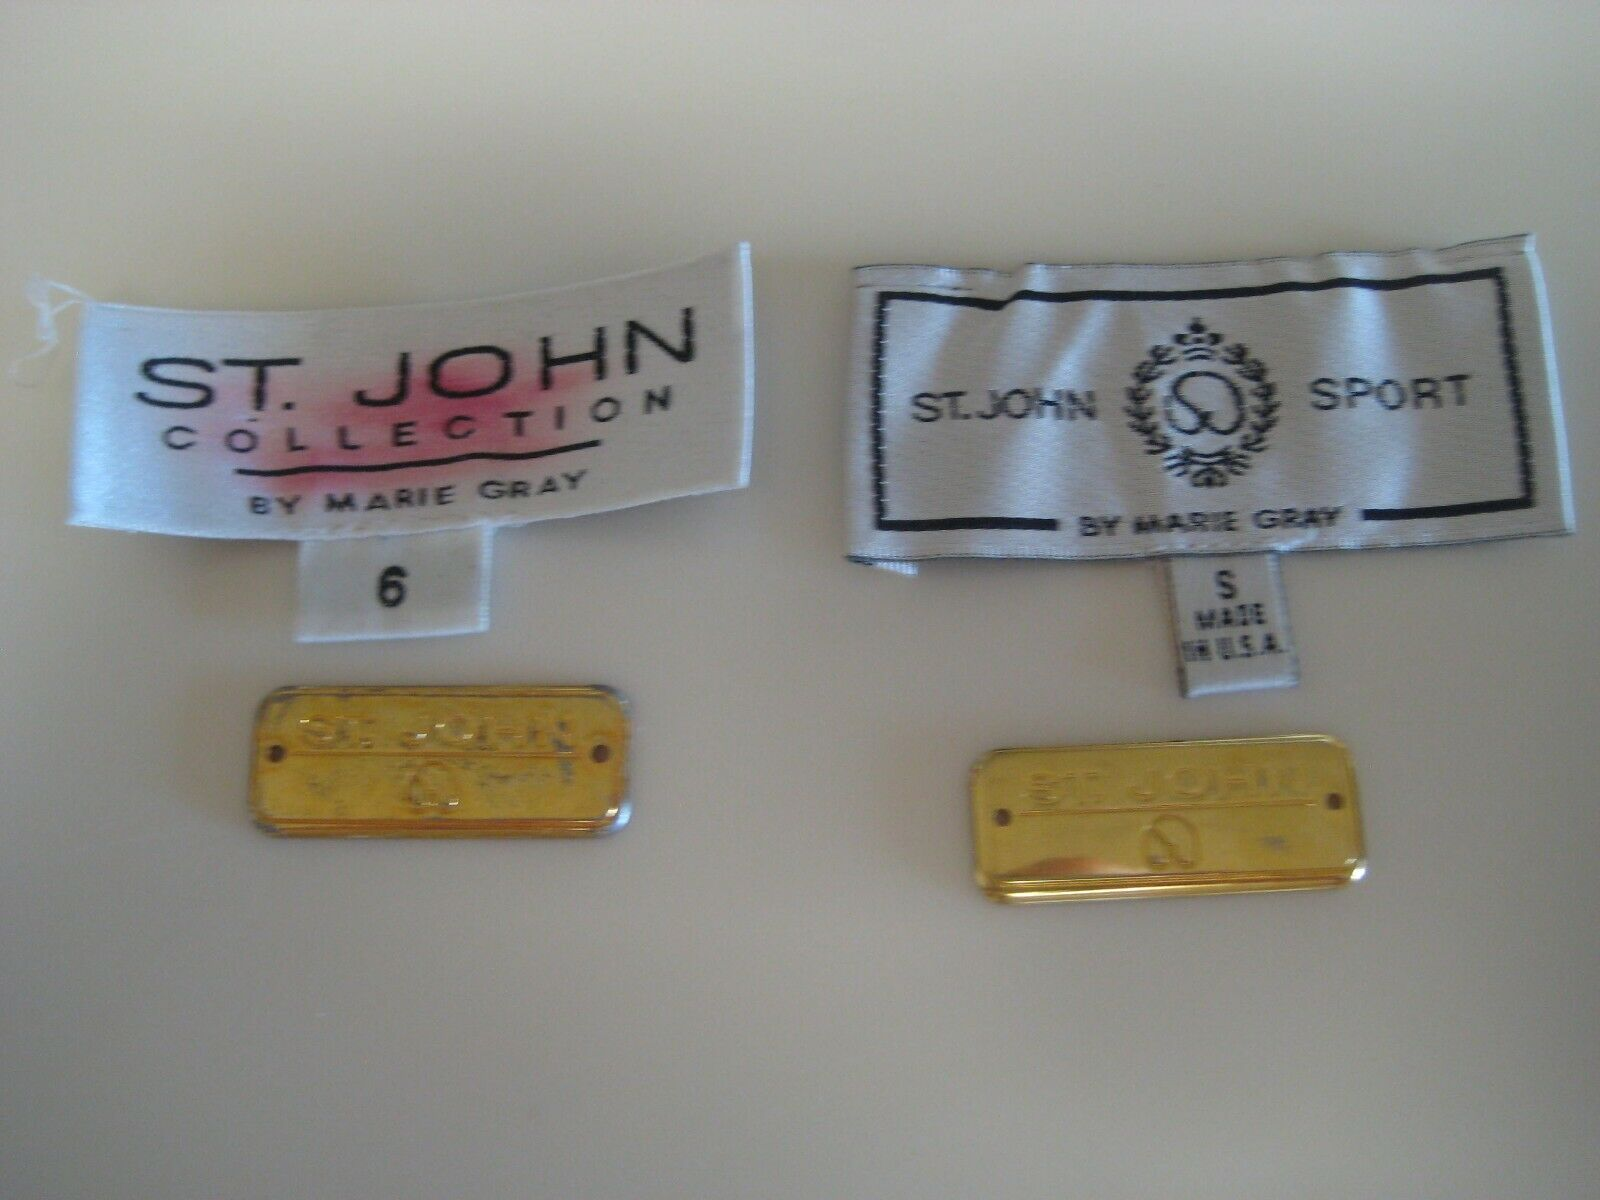 St. John by Marie Gray Signature Labels and Hallmark Logo Plates